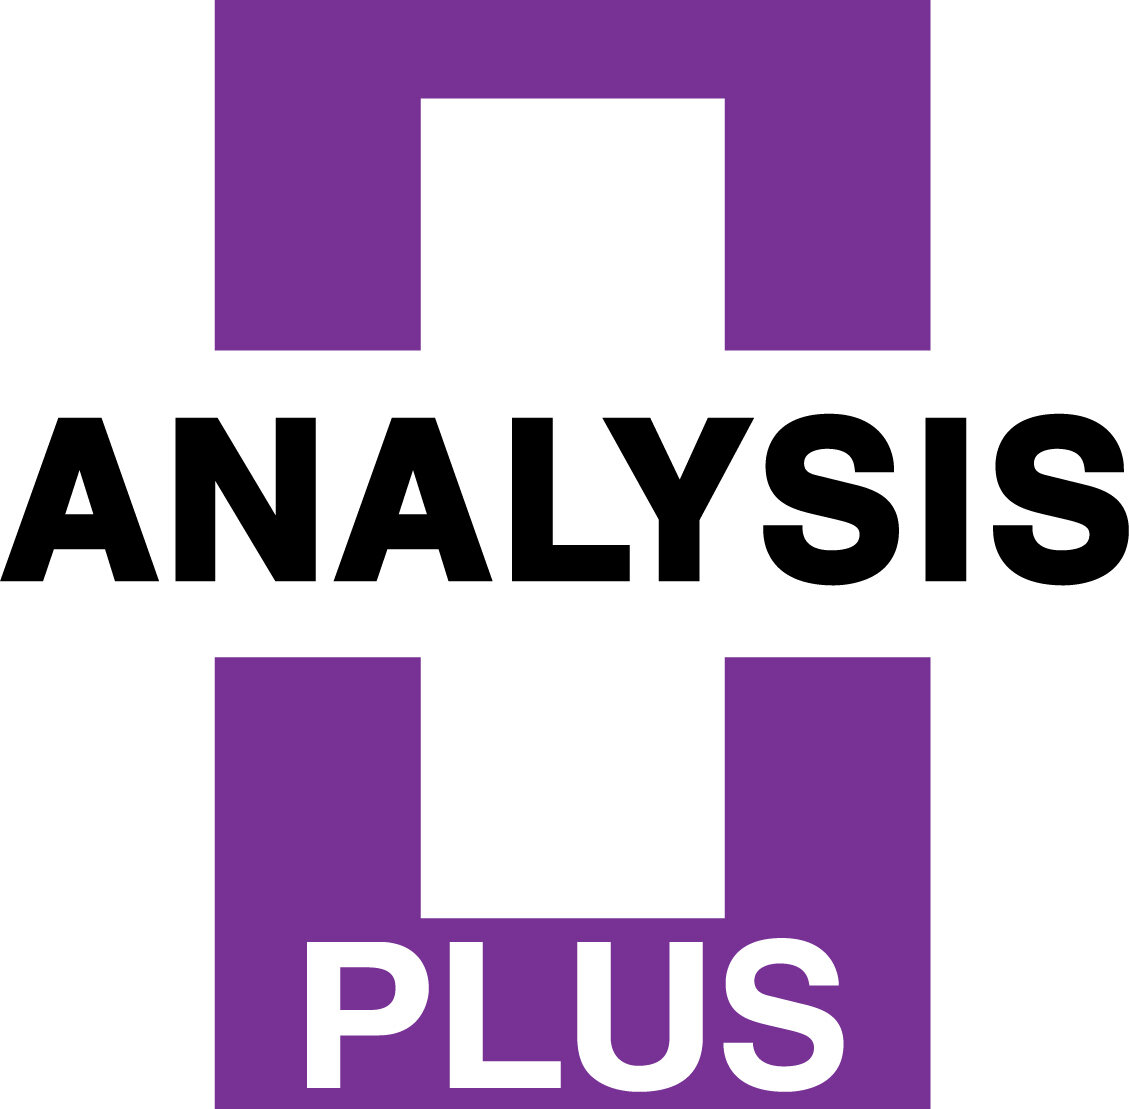 ap logo purple.jpg